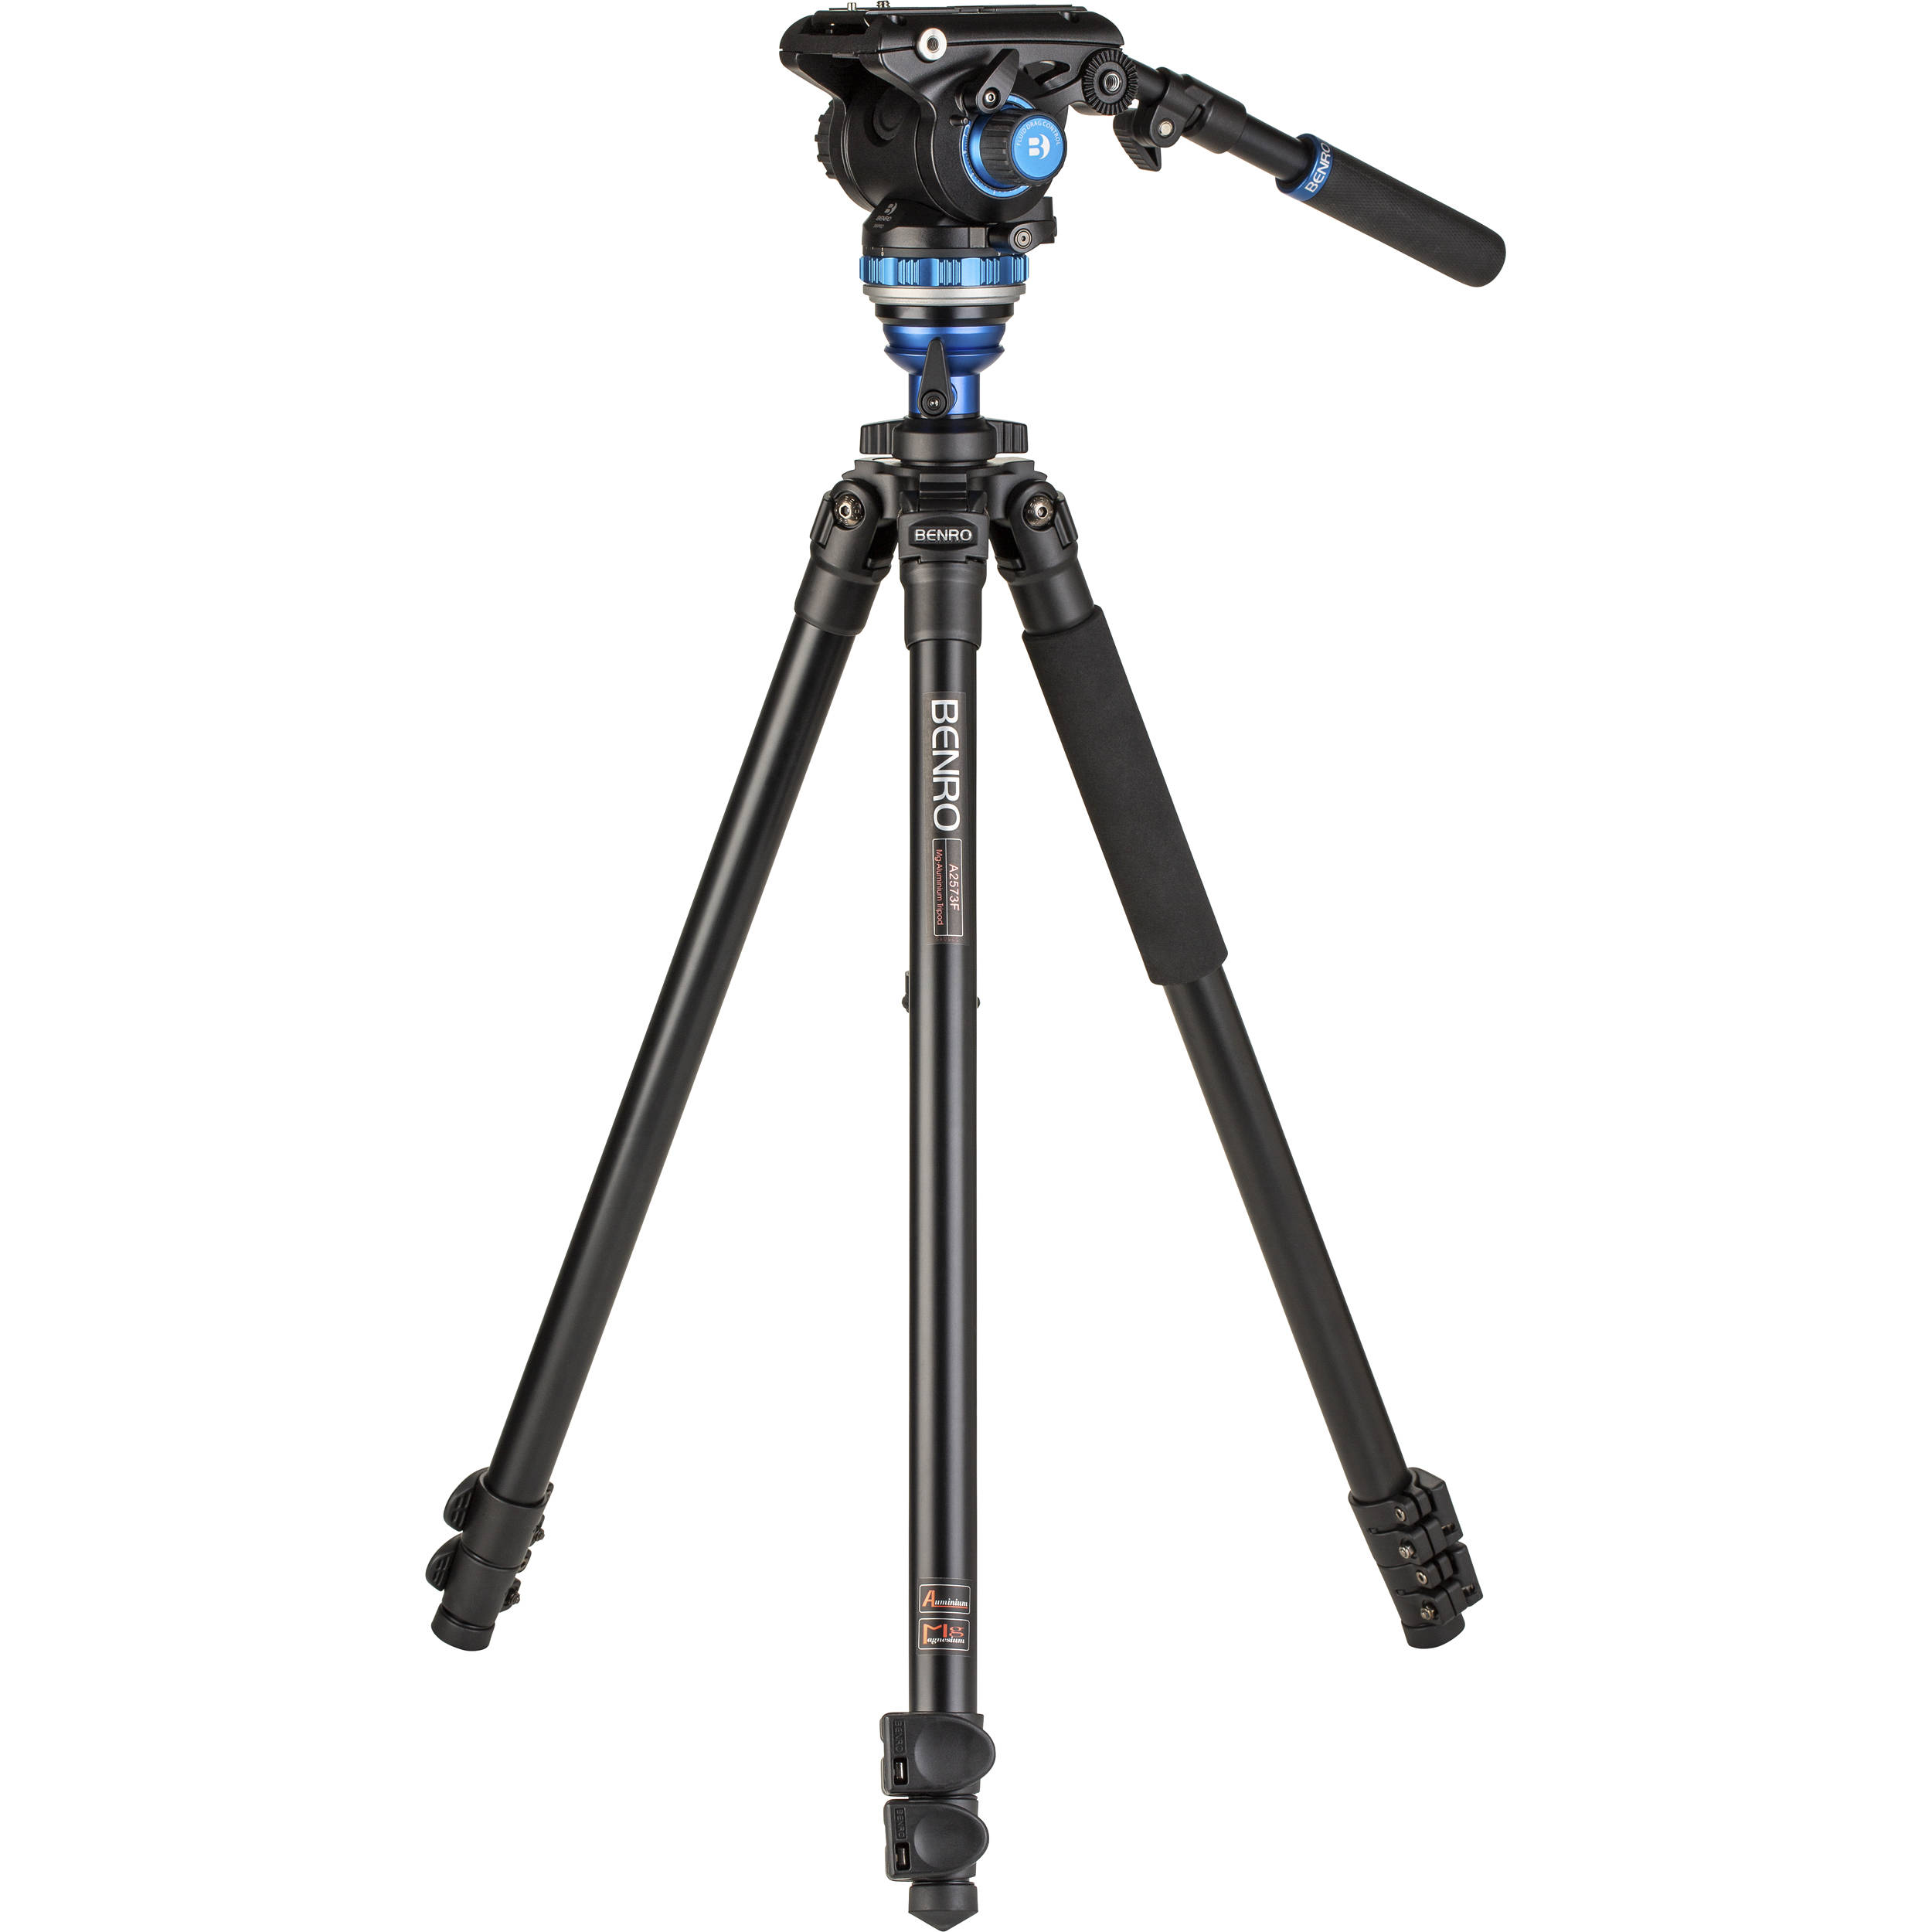 Benro Aero 6 Travel Video Tripod Kit A2573FS6PRO